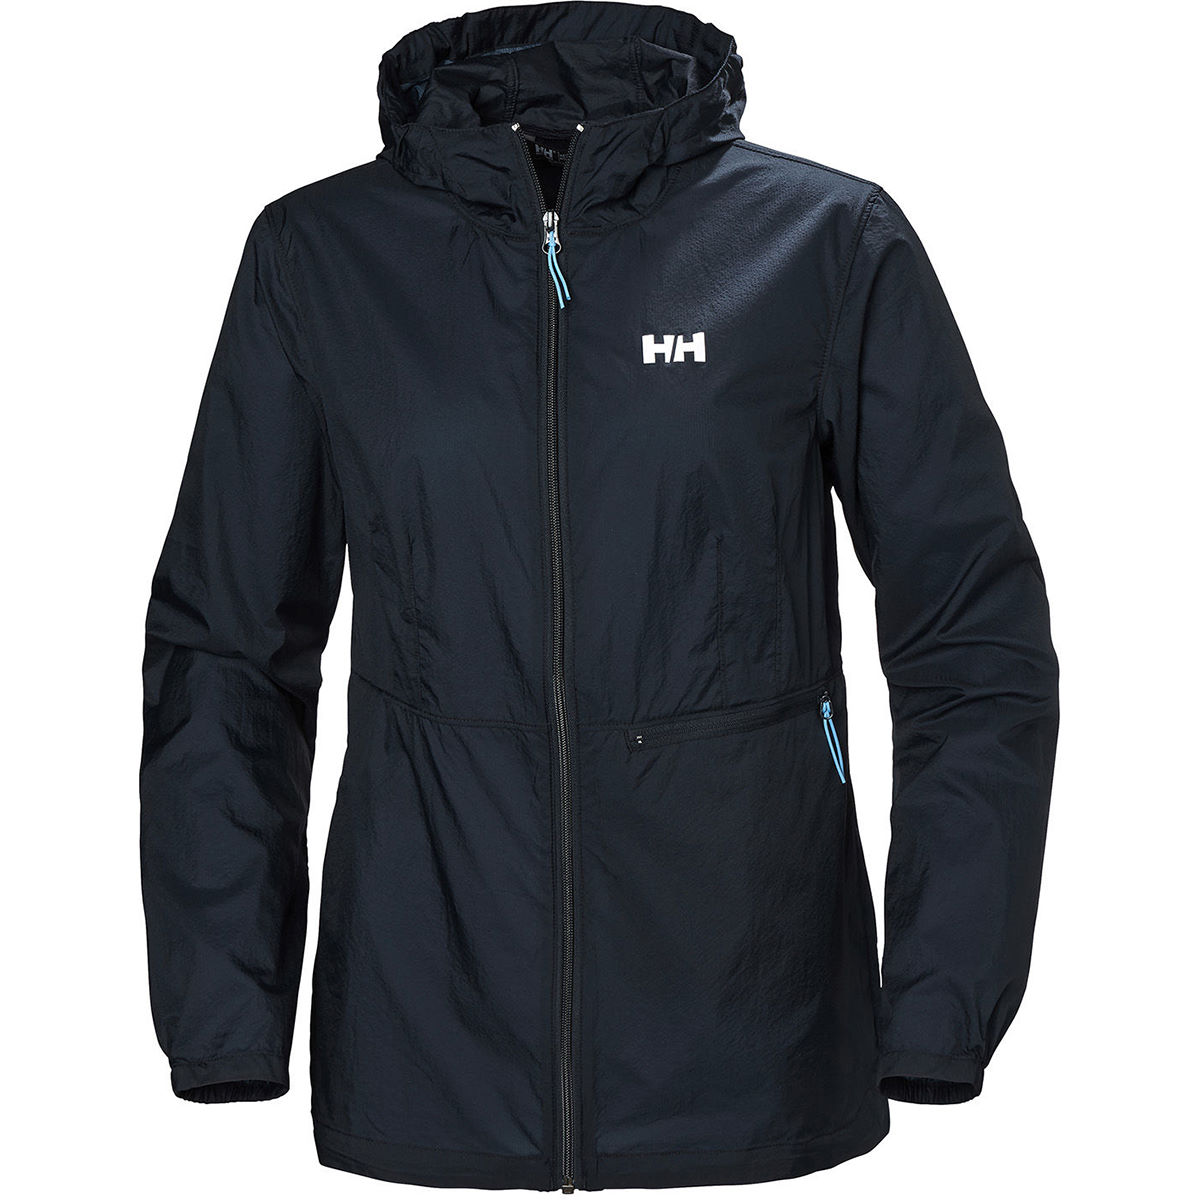 Helly Hansen Helly Hansen Womens Vana Windbreaker Jacket   Jackets